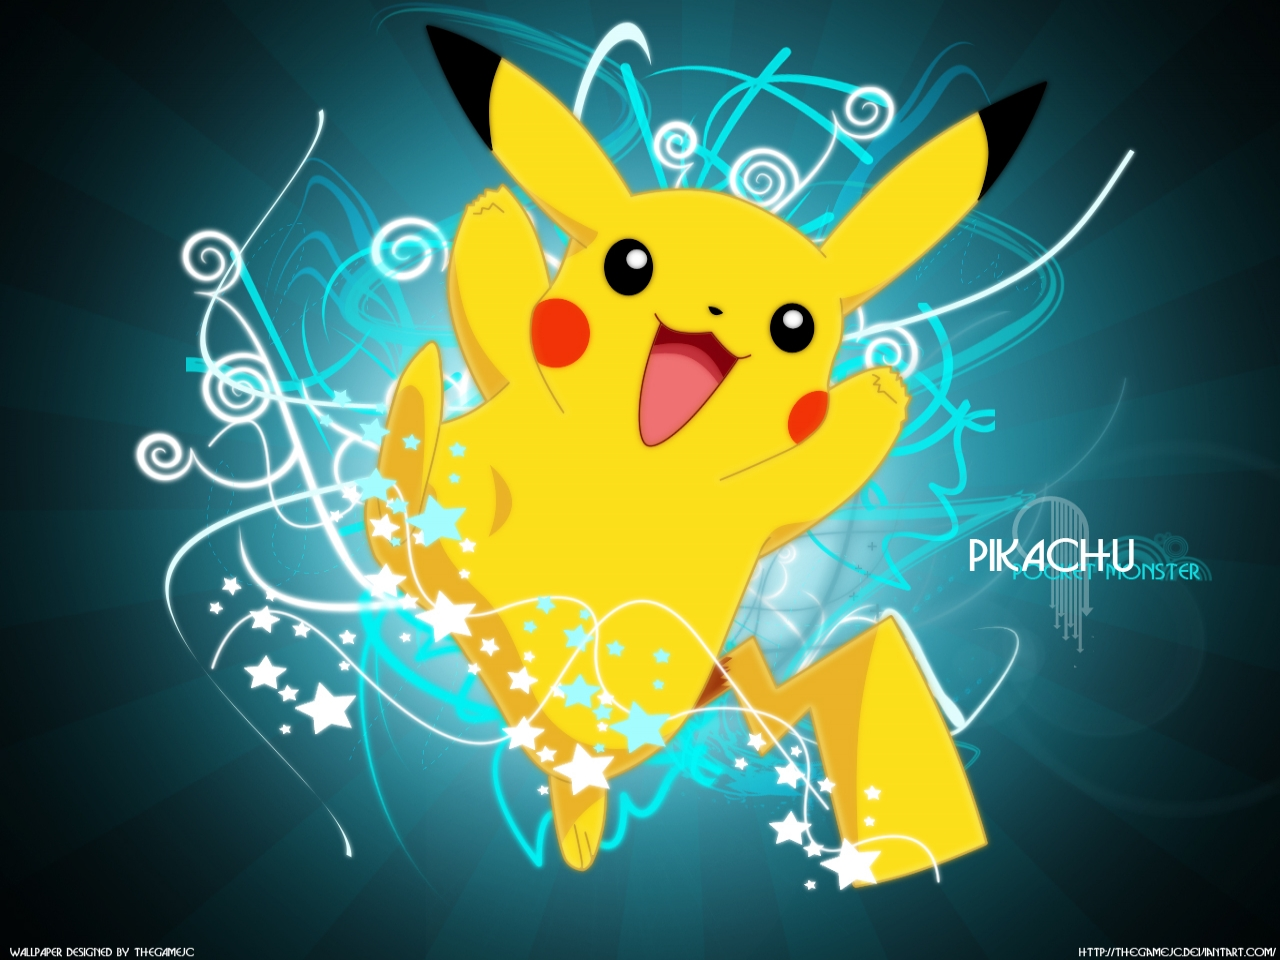 Wallpapers   HD Desktop Wallpapers Online Spectacular Pokmon 1280x960